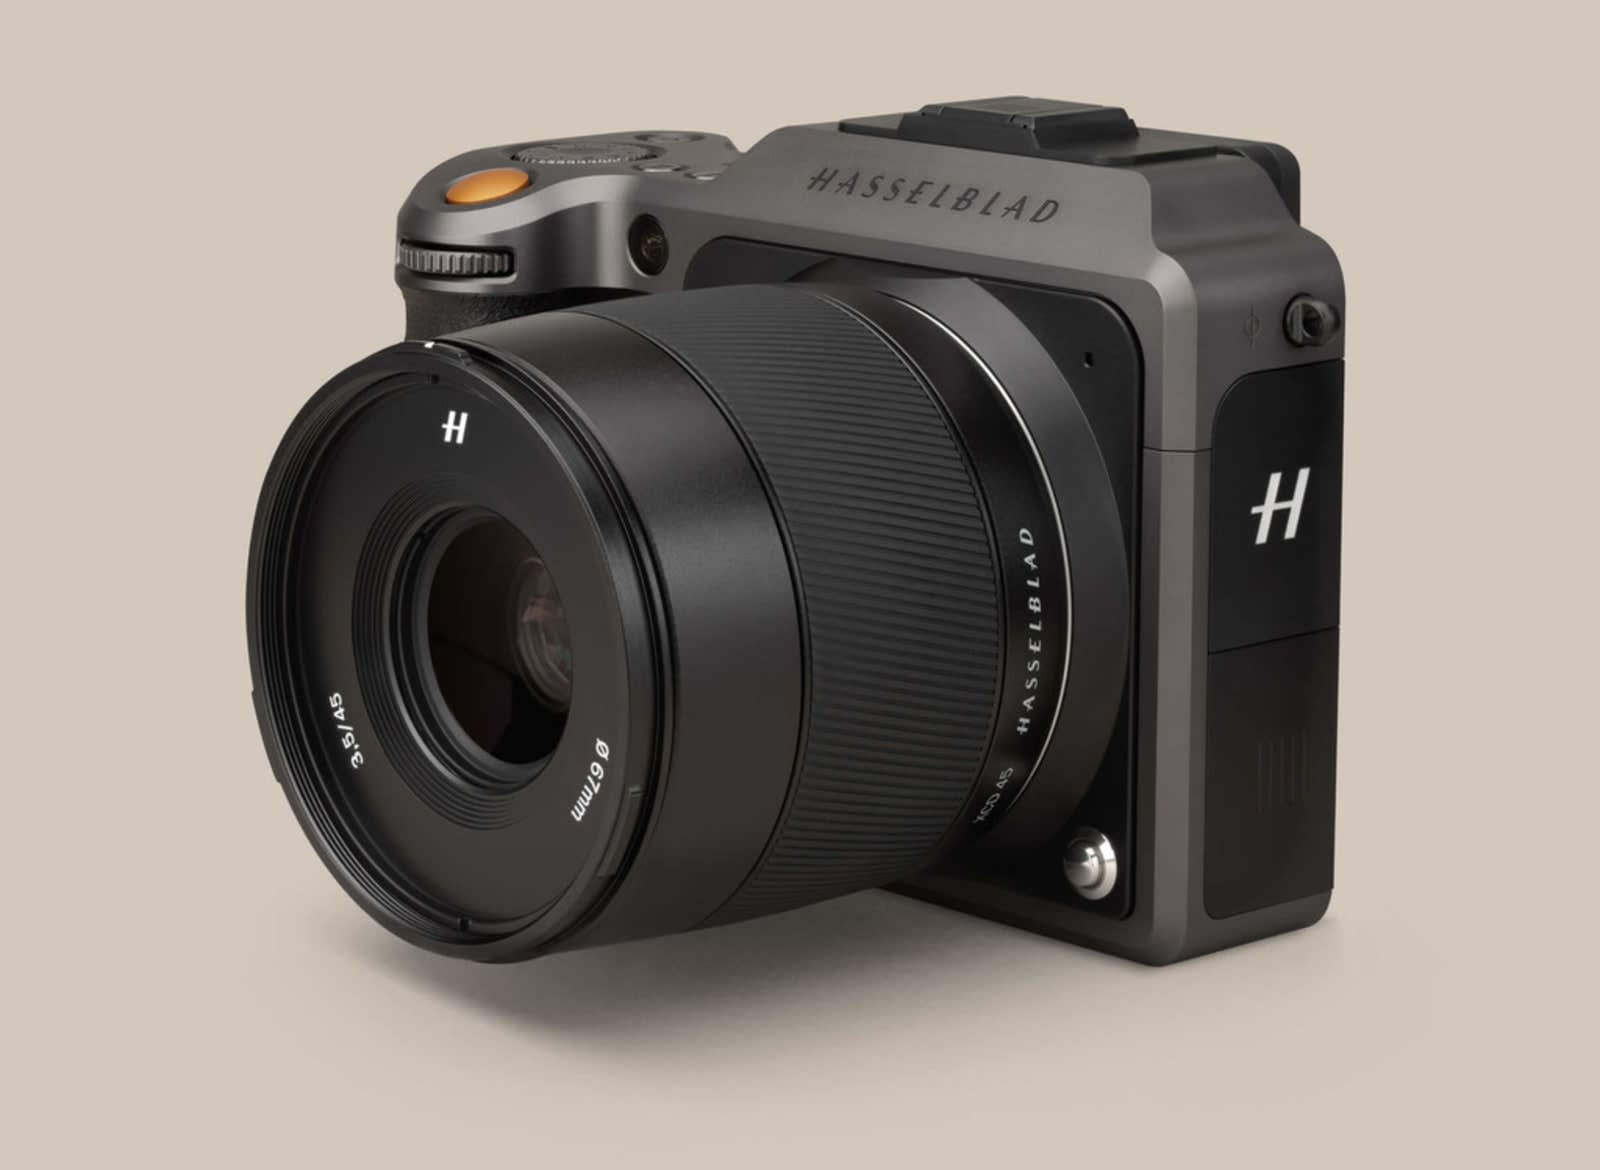 Hasselblad's X1D II mirrorless camera is faster and more affordable